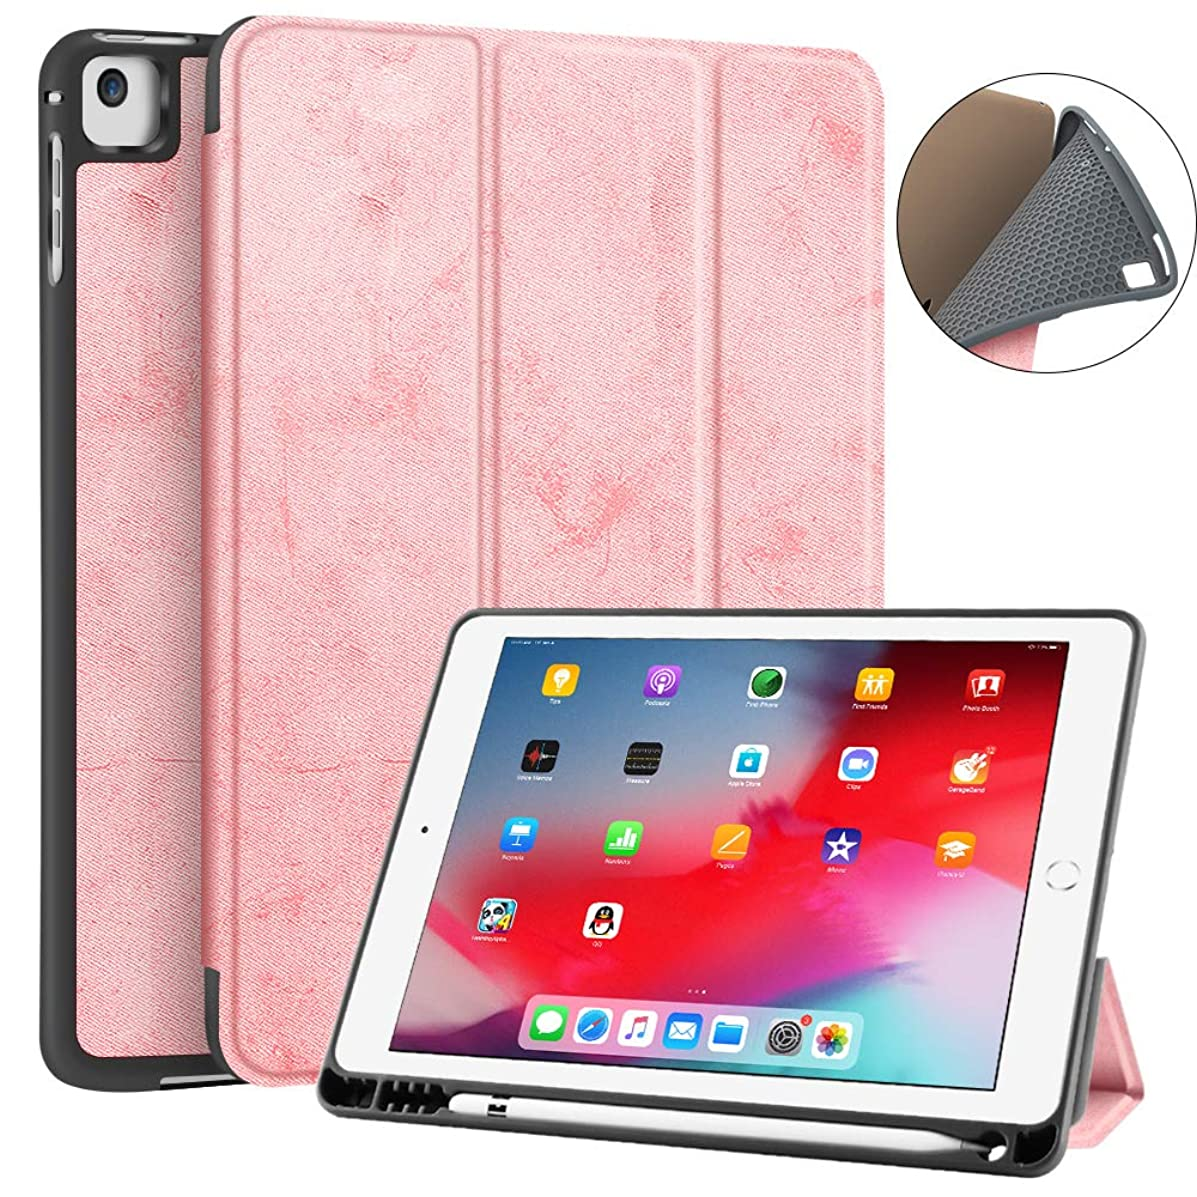 JUQITECH iPad 9.7 2018/2017 Case with Pencil Holder, Flexible Soft TPU Back Cover and Trifold Stand Smart Cover Case with Auto Sleep/Wake for iPad 6th Generation Apple iPad 9.7 Inch, Pink